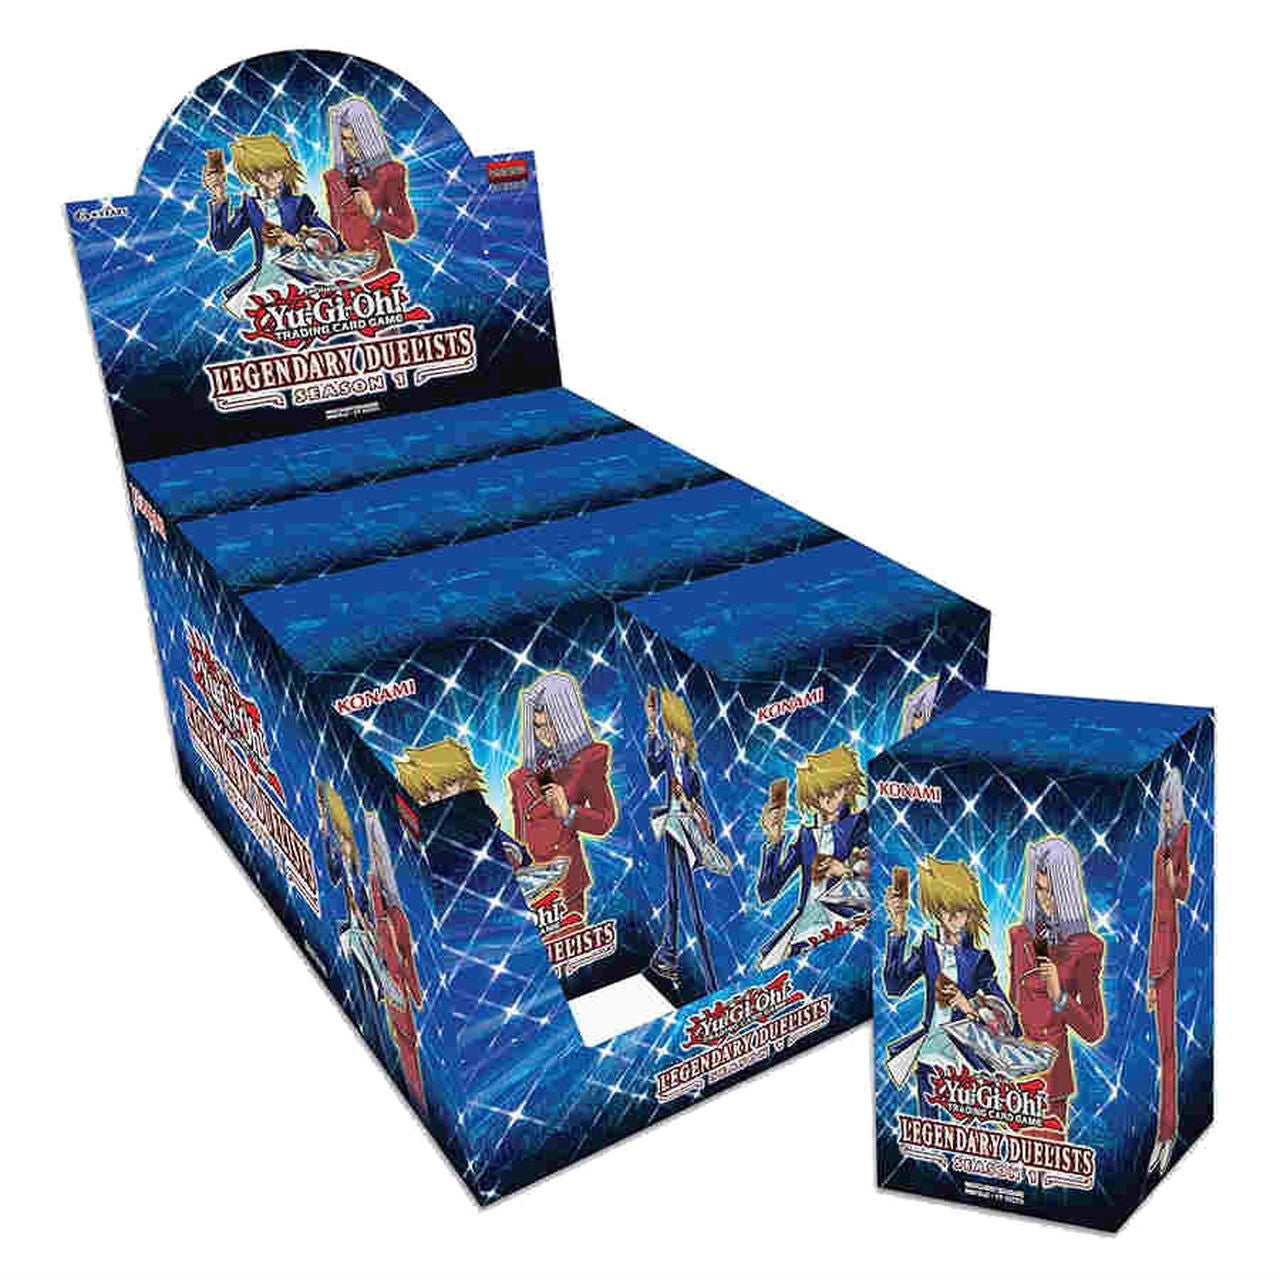 Yu-Gi-Oh: Legendary Duelists Season 1 Display Box (8) | Gamers Grove